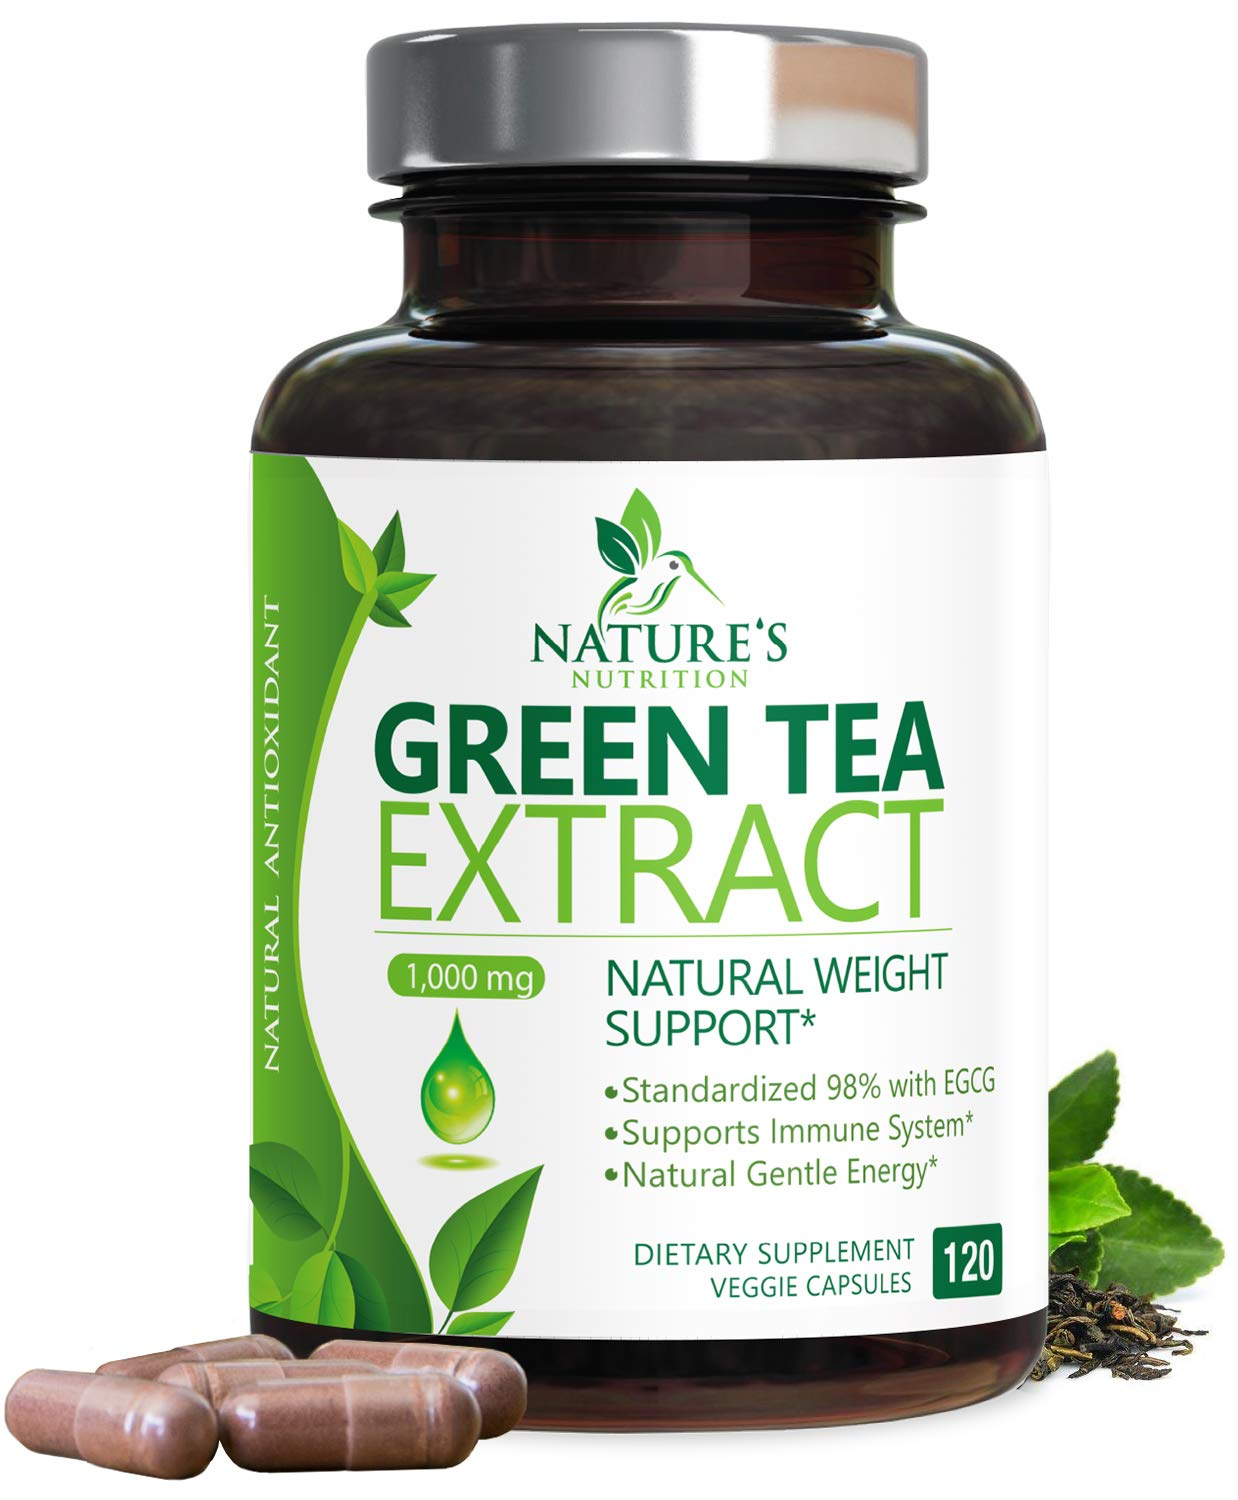 Green Tea Extract 98% Standardized Egcg for a Healthy Body 1000mg - Supports Healthy Heart, Metabolism & Energy with Polyphenols - Gentle Caffeine, Made in USA - 120 Capsules